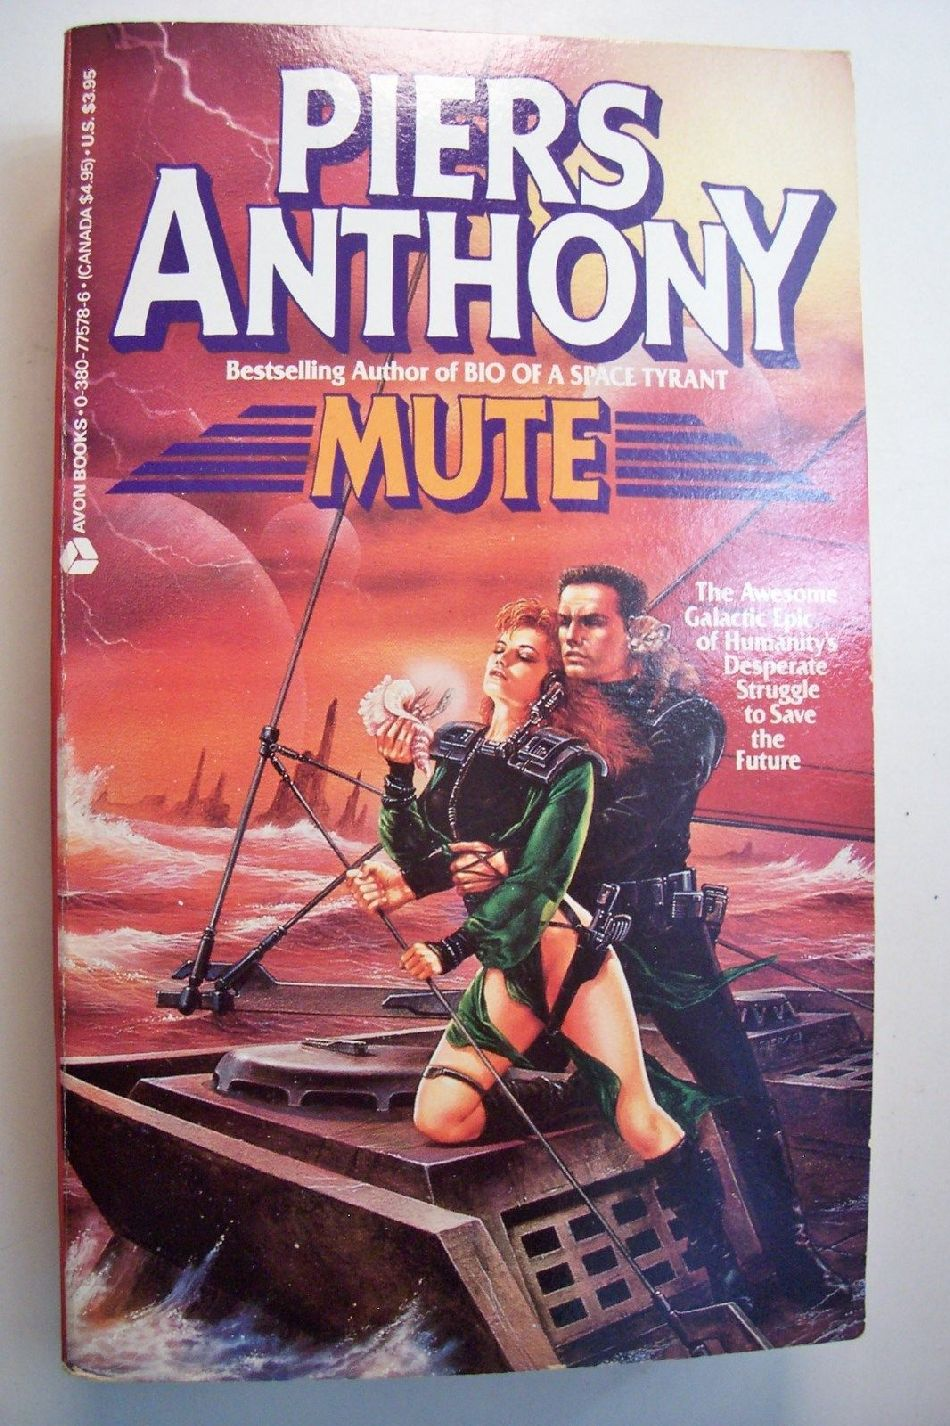 A Piers Anthony mute button? Splendid idea!